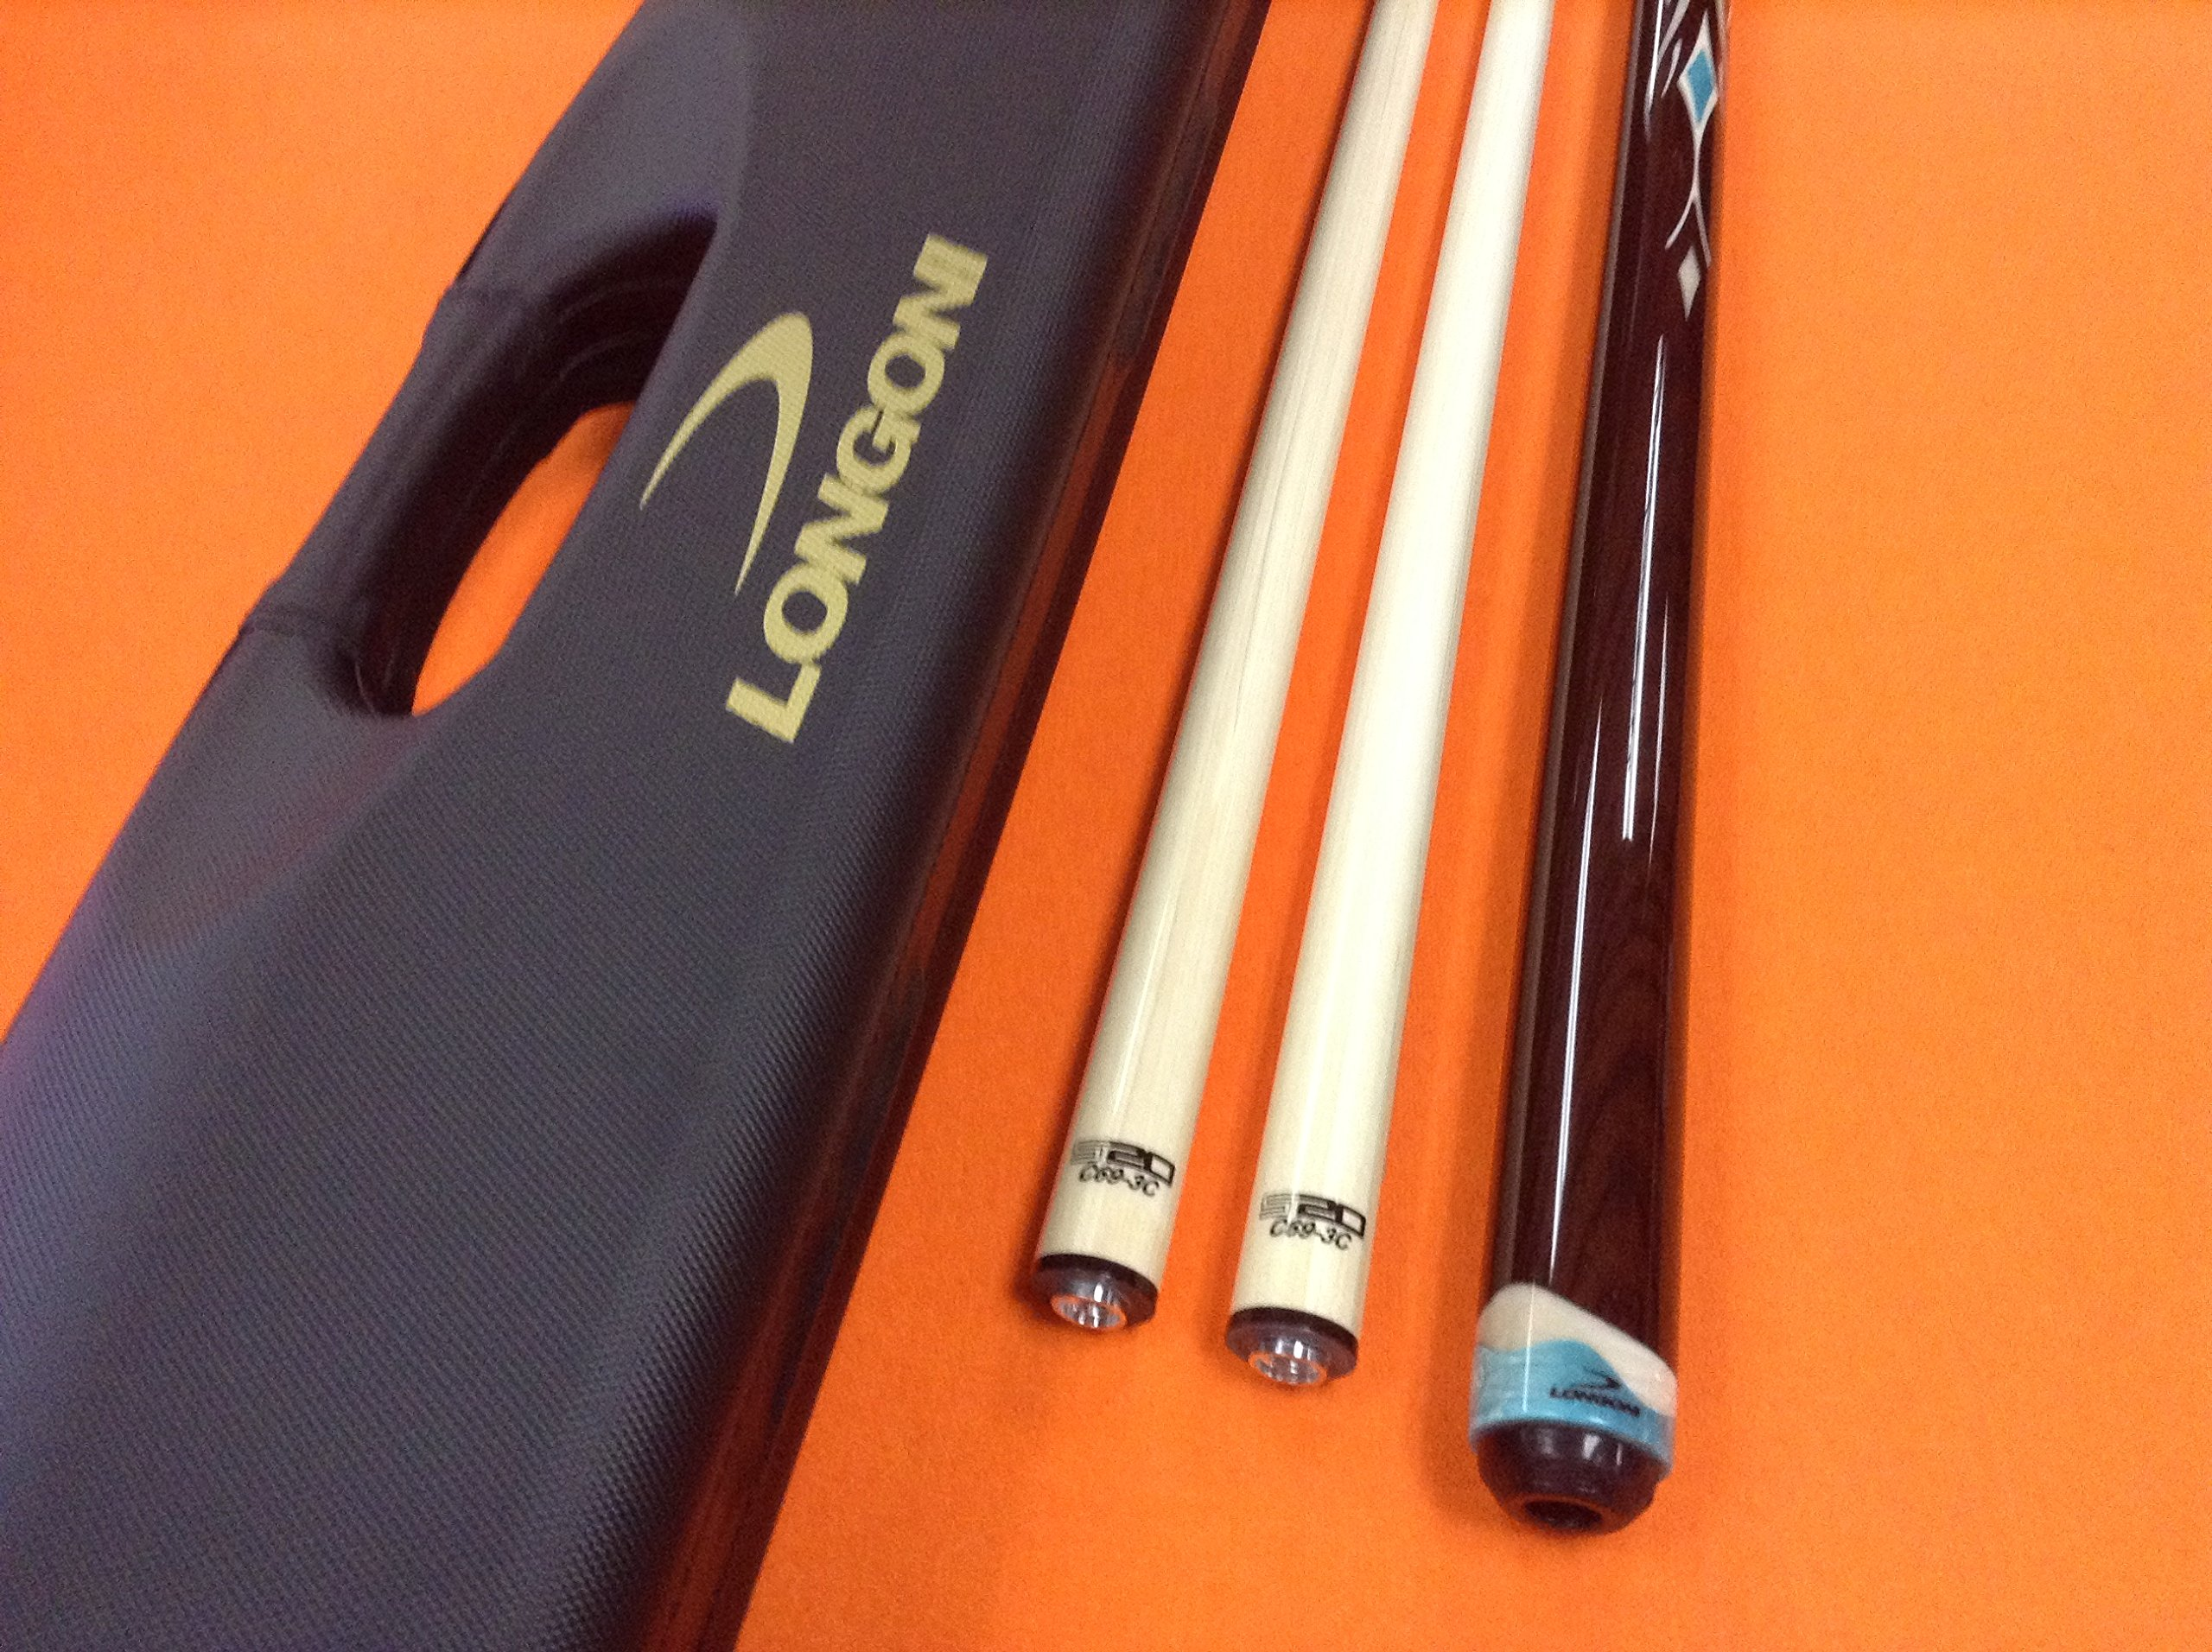 Longoni CAROM CUE LEPPENS S20 C69 SHAFTS & PATENTED CASE (special edition).